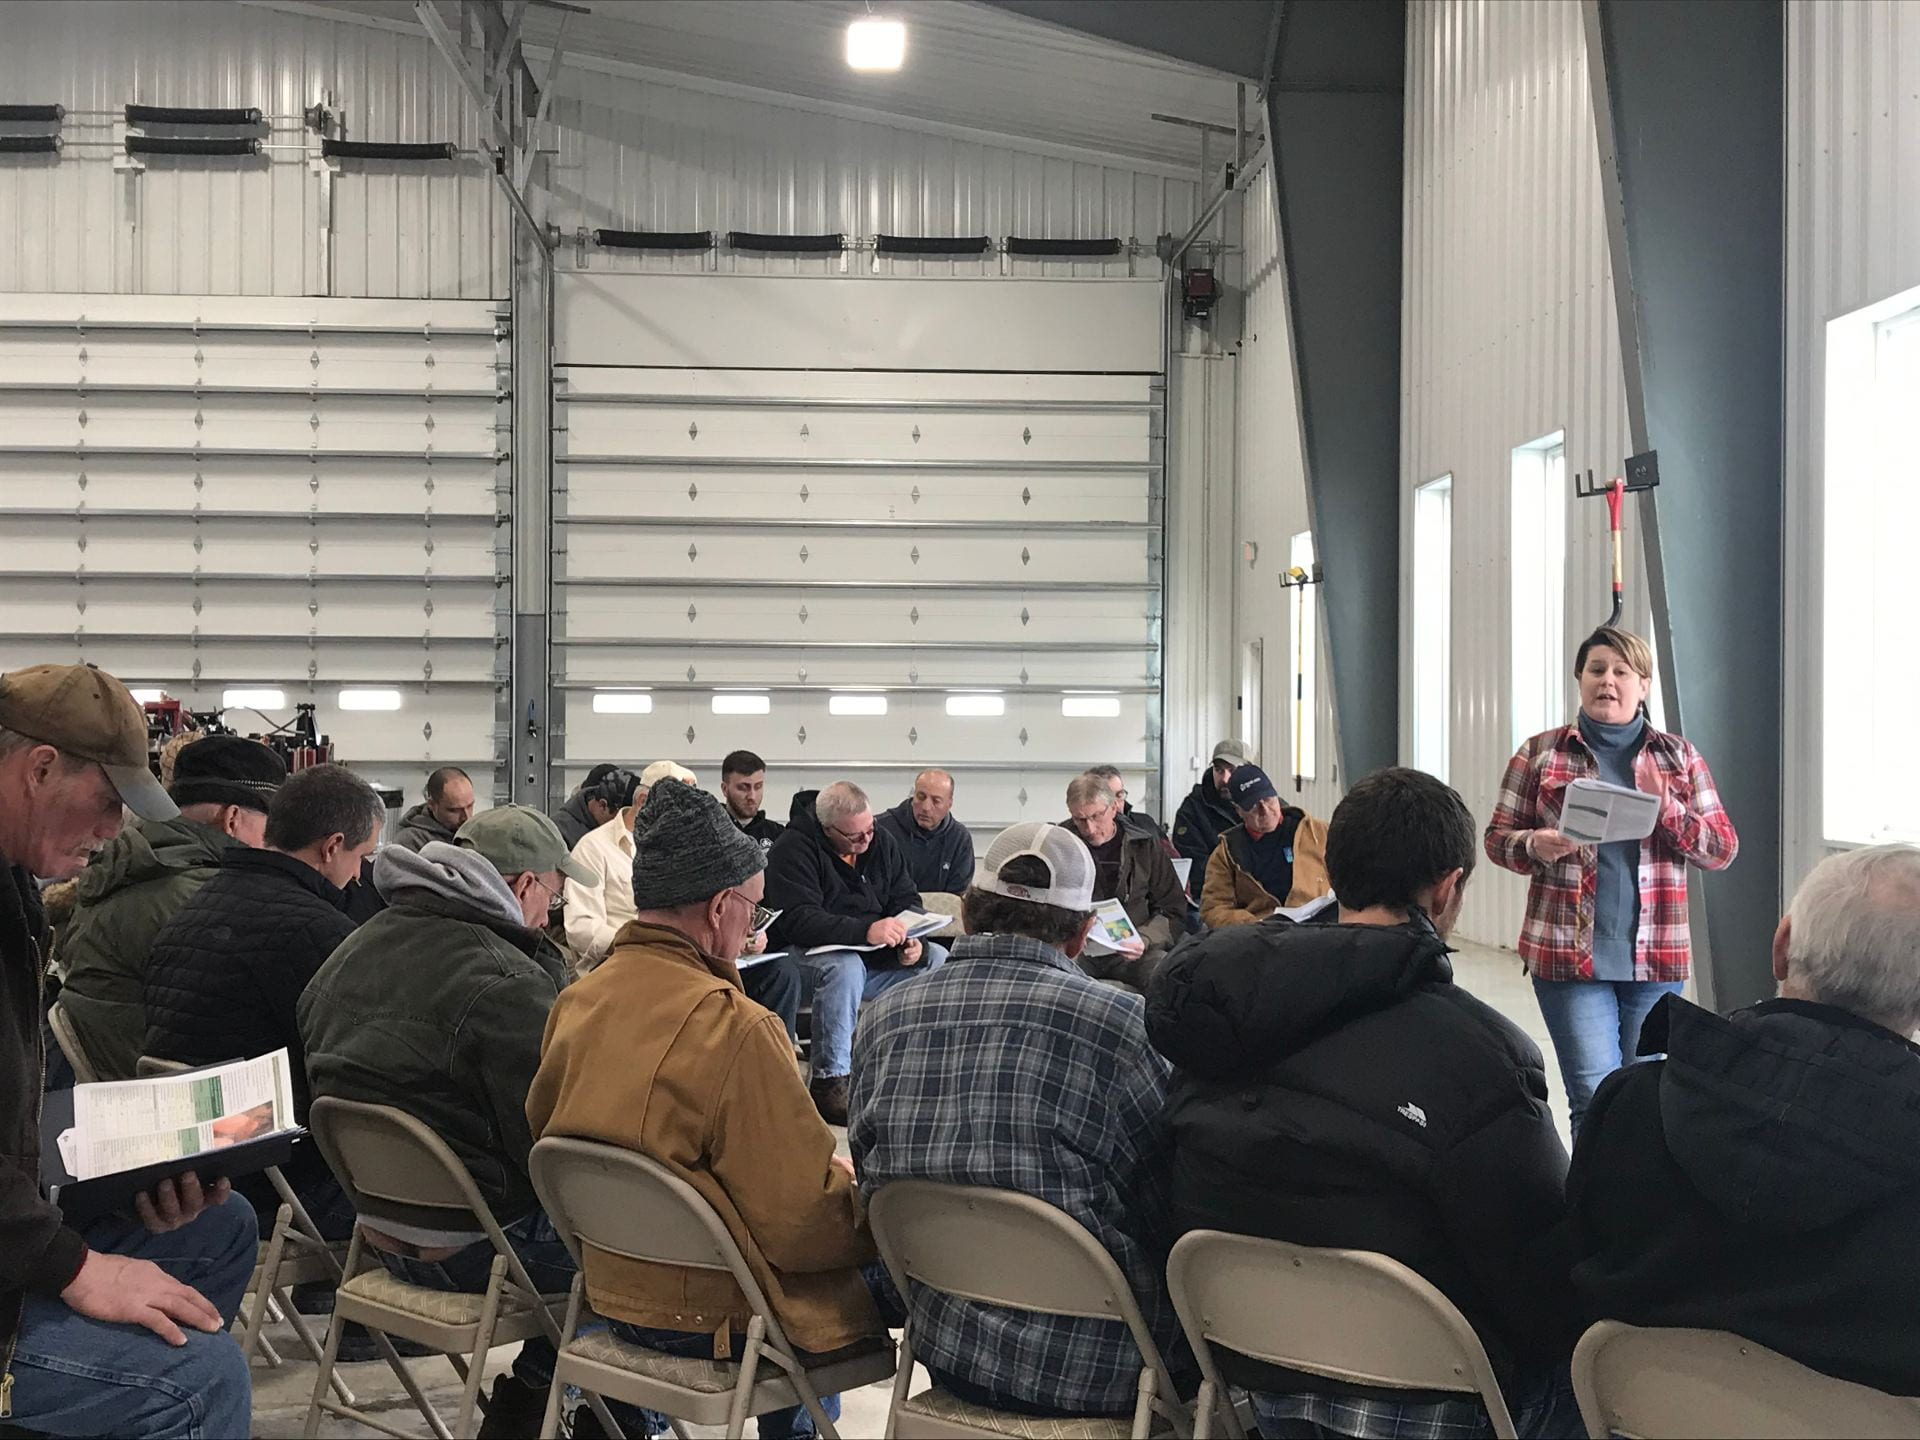 Photo shows Jaime Cummings speaking to a group of seated farmers inside a large, bright metal barn.